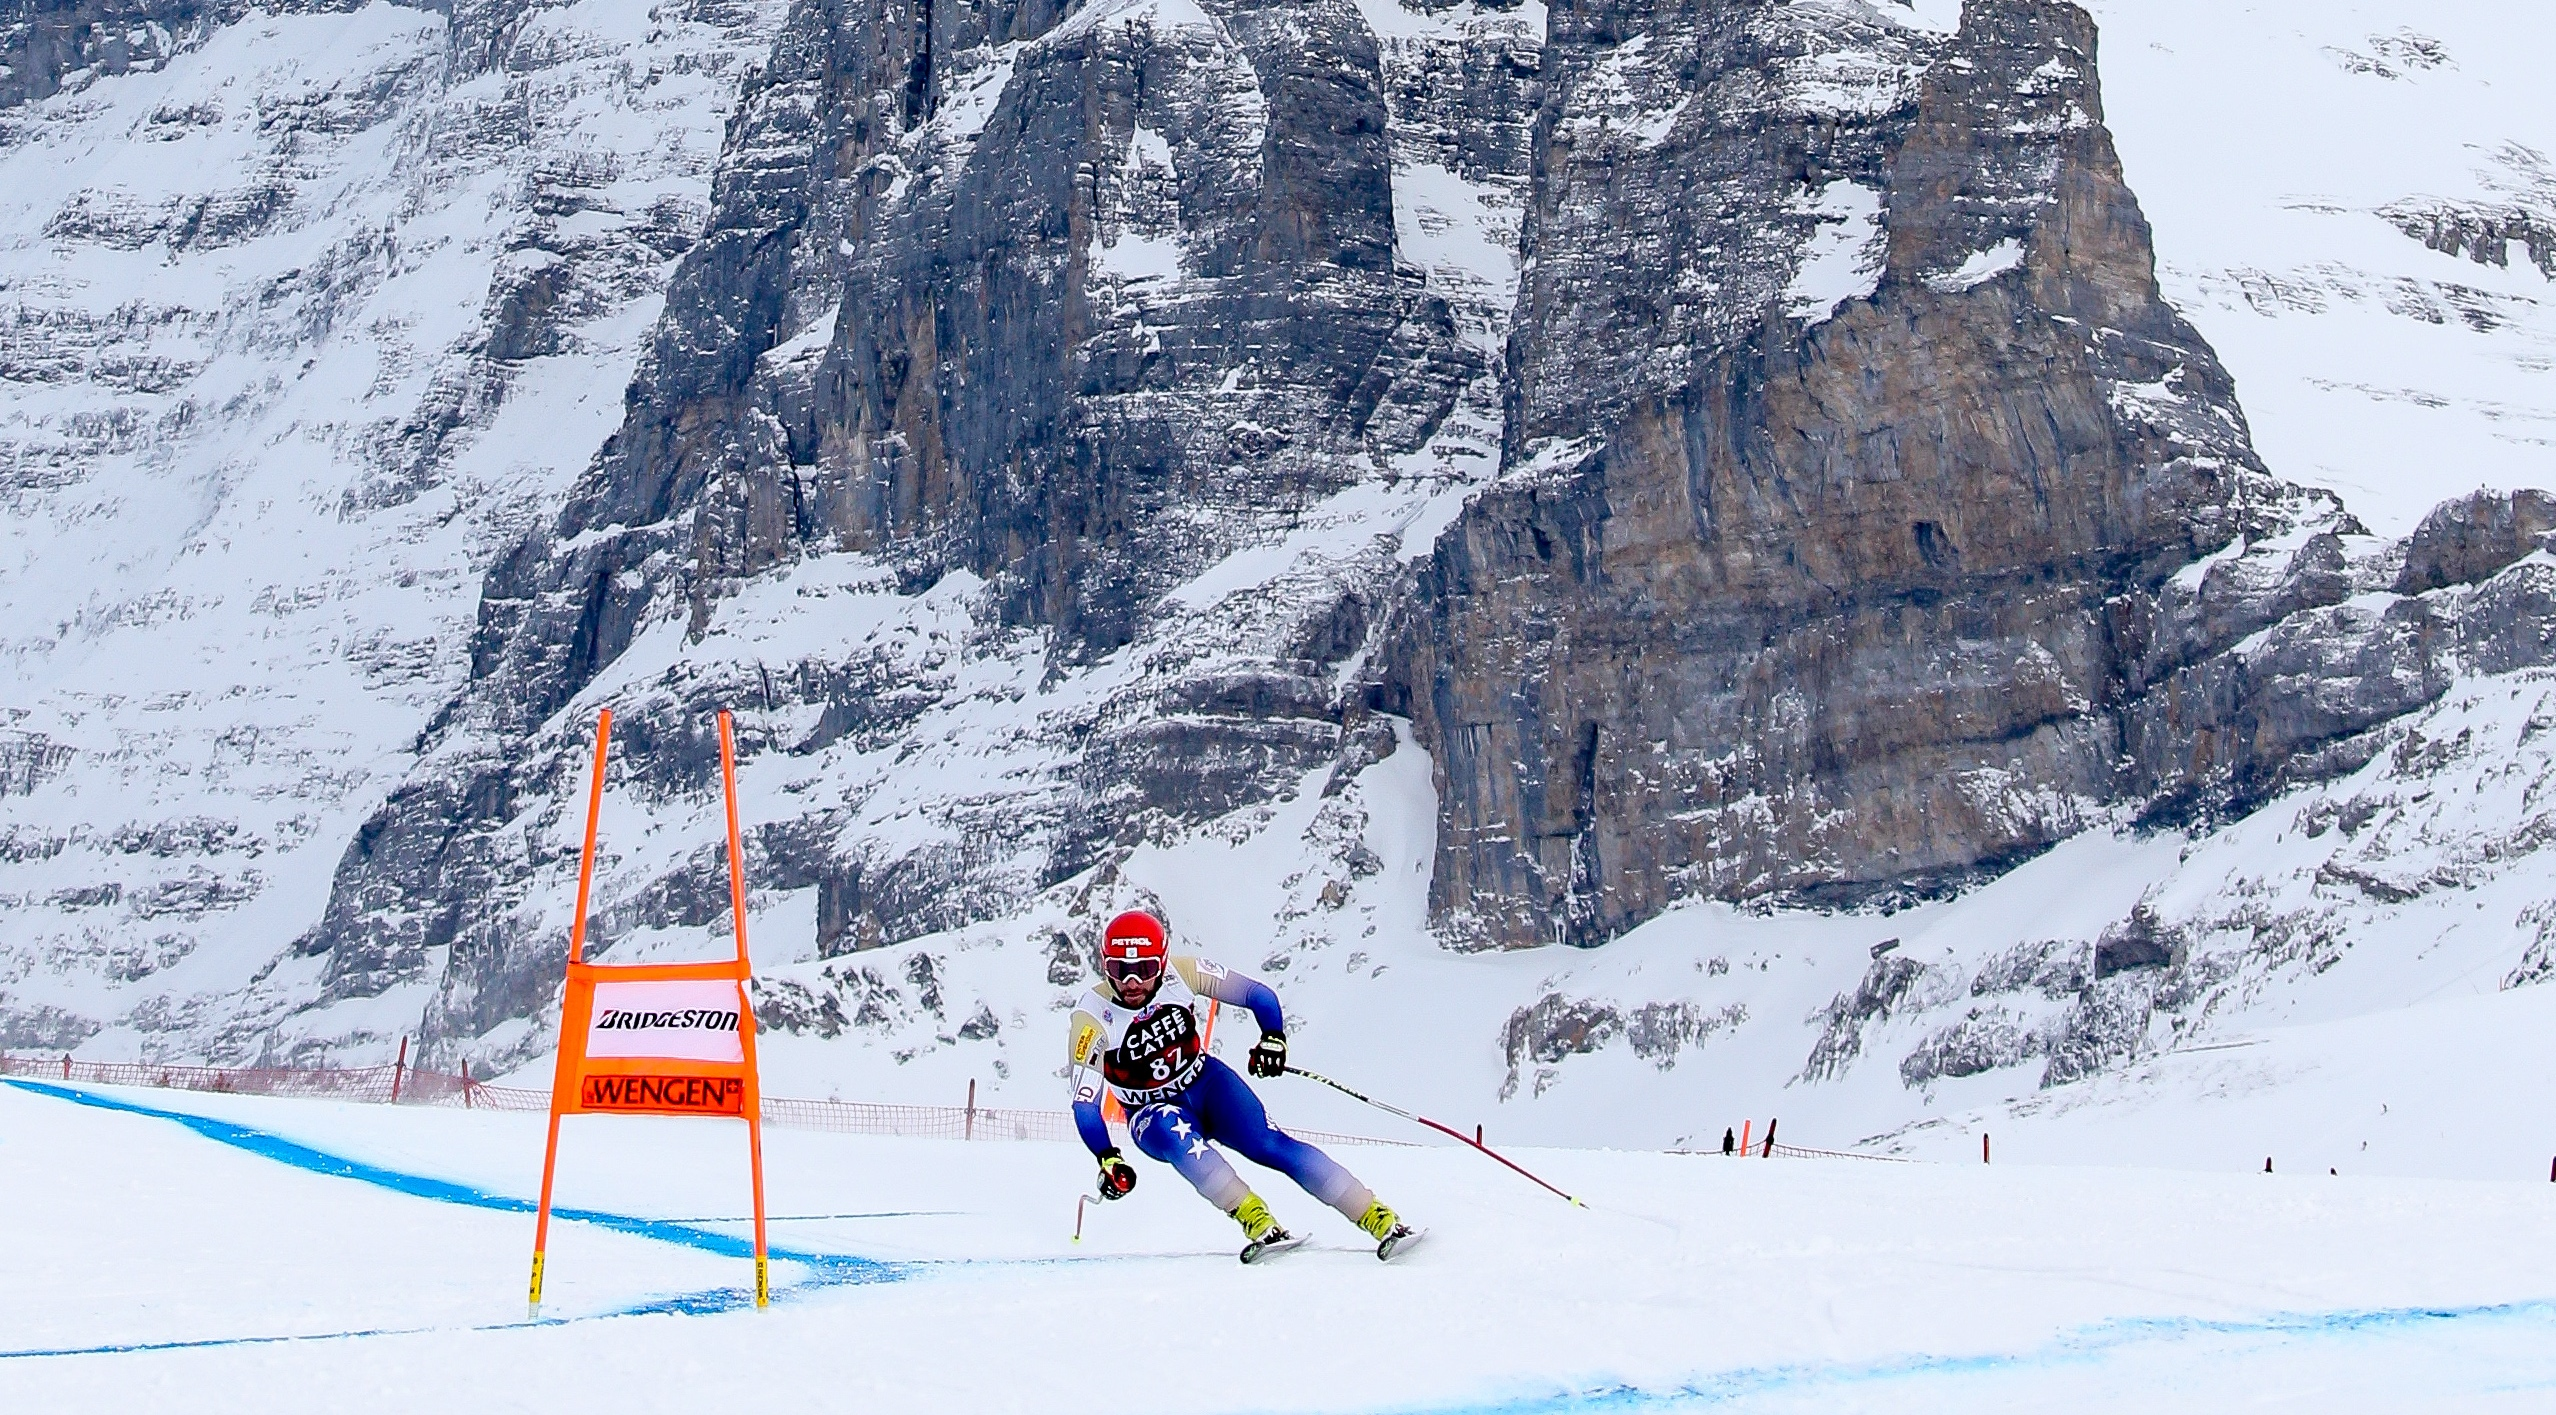 WENGEN,SWITZERLAND,10.JAN.18 - ALPINE SKIING - FIS World Cup, Downhill Training, Men. Image Shows Albin Tahiri (KOS). Photo: GEPA Pictures/ Mario Kneisl